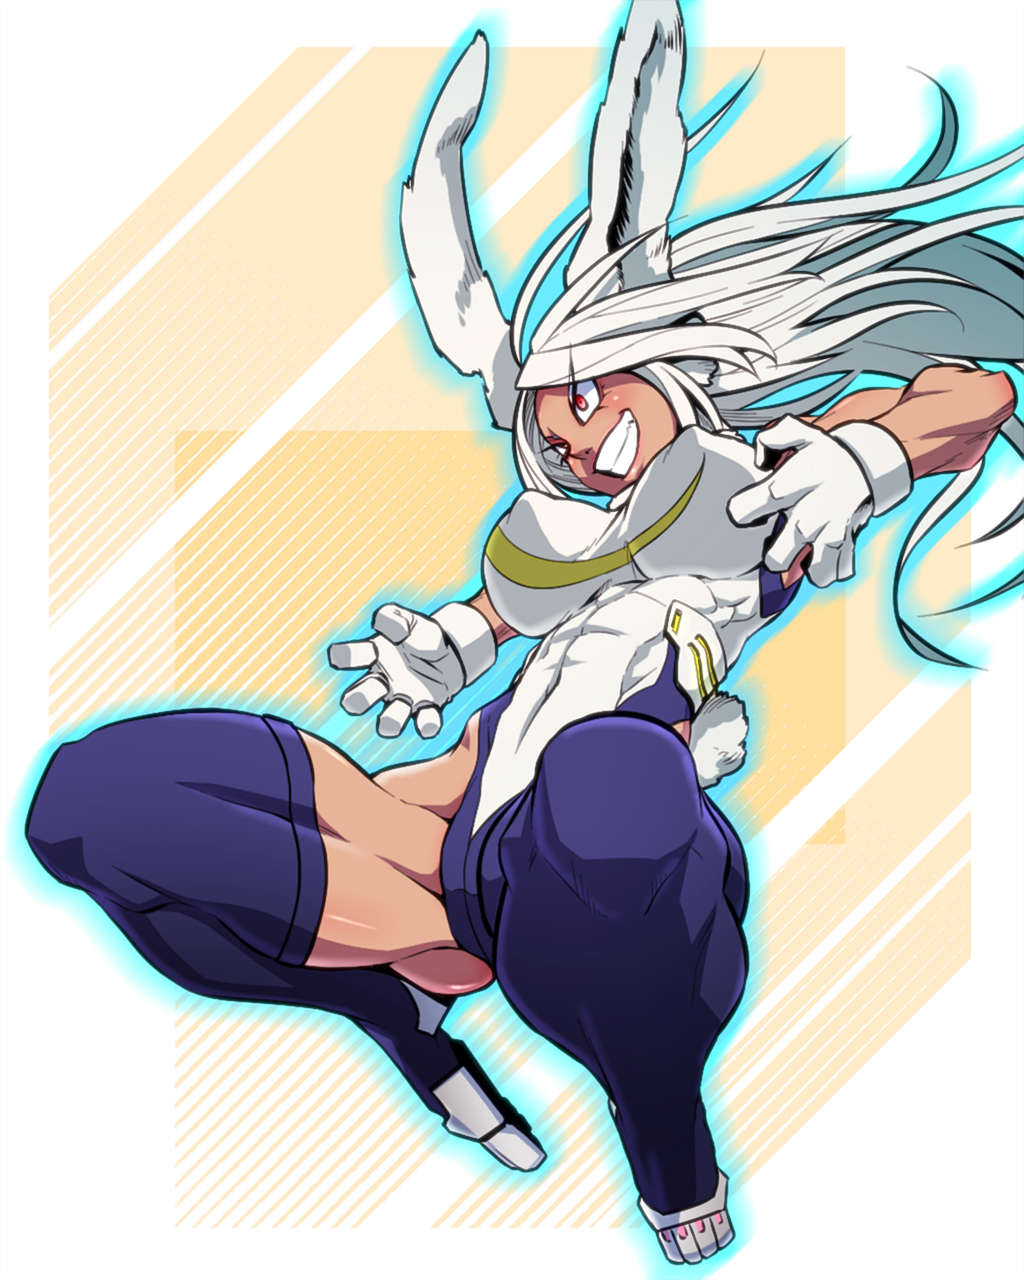 1girl animal_ears arms_up ass_visible_through_thighs bare_arms biceps boku_no_hero_academia breasts bunny_tail commentary_request covered_nipples crescent_print dark_skin floating_hair full_body fur_collar grin highleg highleg_leotard highres impossible_clothes impossible_leotard jin_(mugenjin) large_breasts leotard long_hair looking_afar midair mirko muscle muscular_female rabbit_ears rabbit_girl red_eyes smile solo spread_legs superhero tail teeth thick_thighs thigh_strap thighs v-shaped_eyebrows white_hair